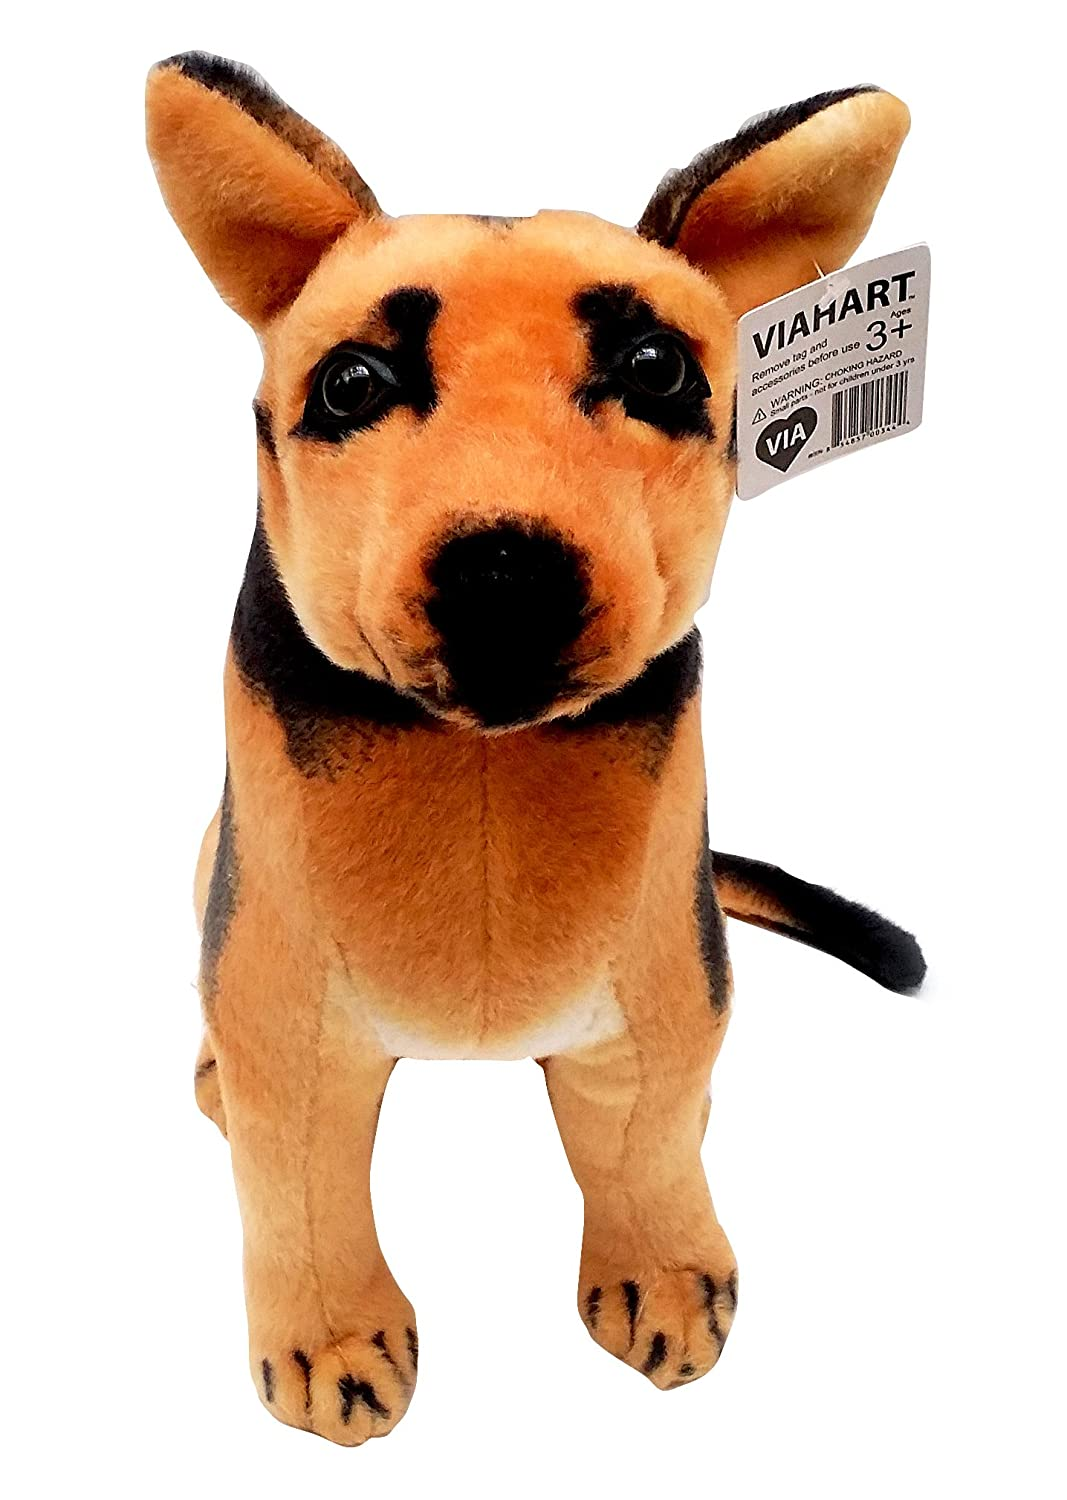 amazoncom gunther the german shepherd   inch large german  - amazoncom gunther the german shepherd   inch large german shepherdstuffed animal plush dog  by tiger tale toys toys  games